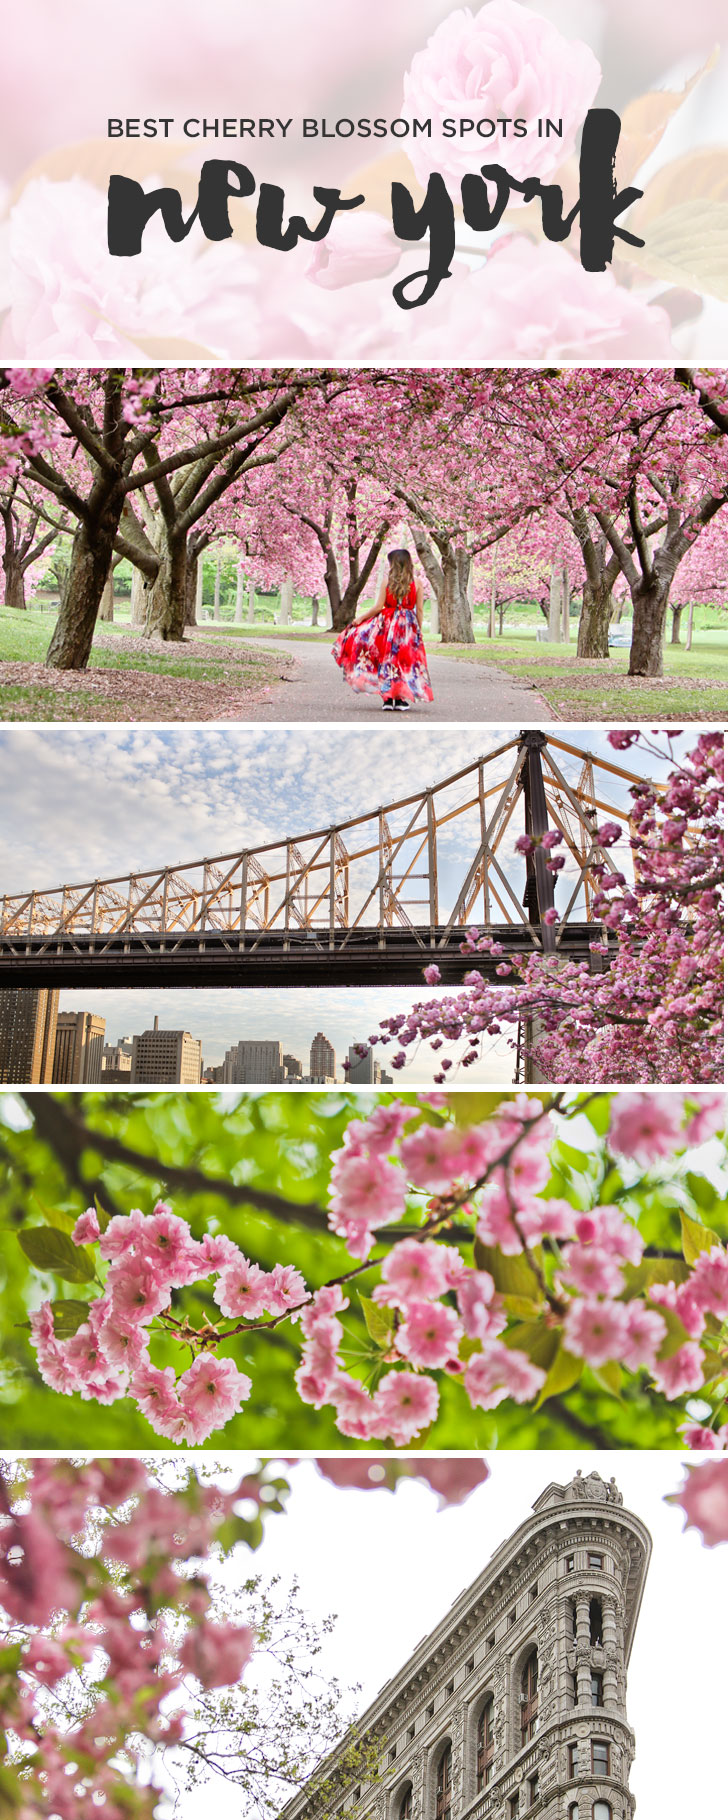 Cherry Blossom Festival in New York + Best Places to See Cherry Blossoms including Central Park, Roosevelt Island, and more + Essential Tips // Local Adventurer #nyc #newyork